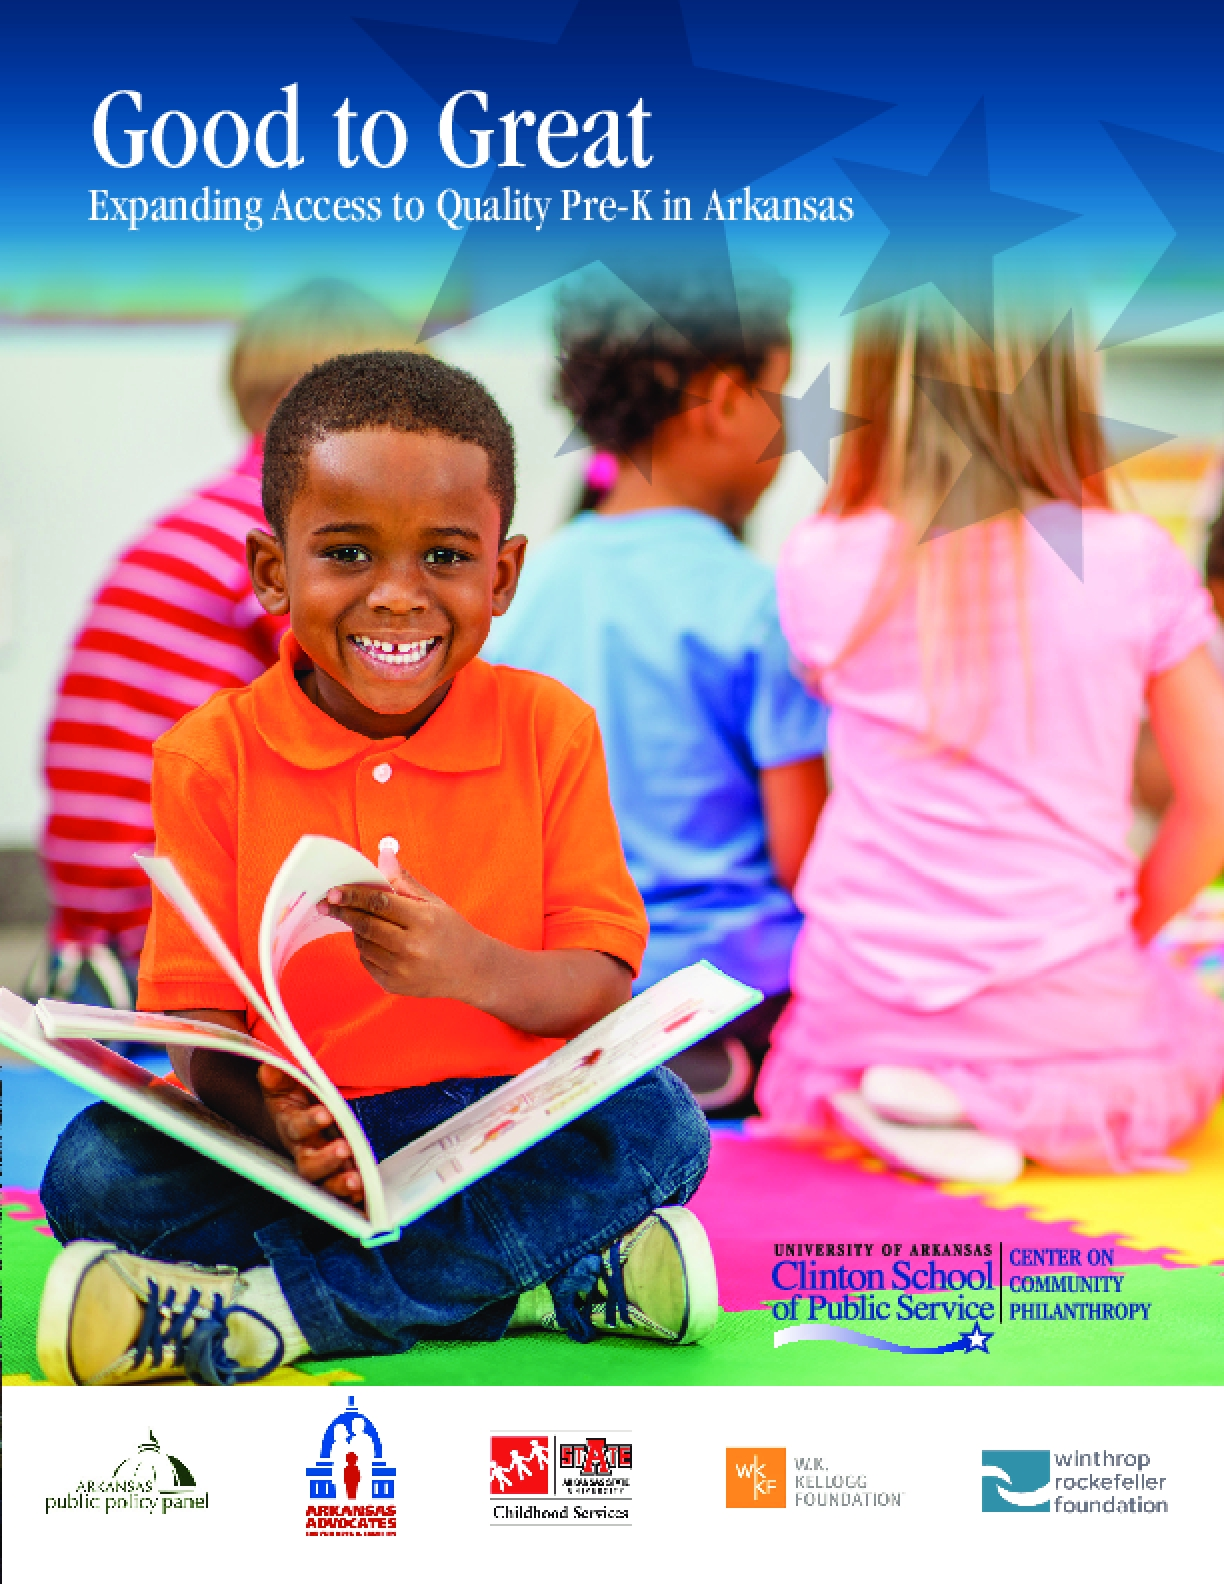 Good to Great: Expanding Access to Quality Pre-K in Arkansas